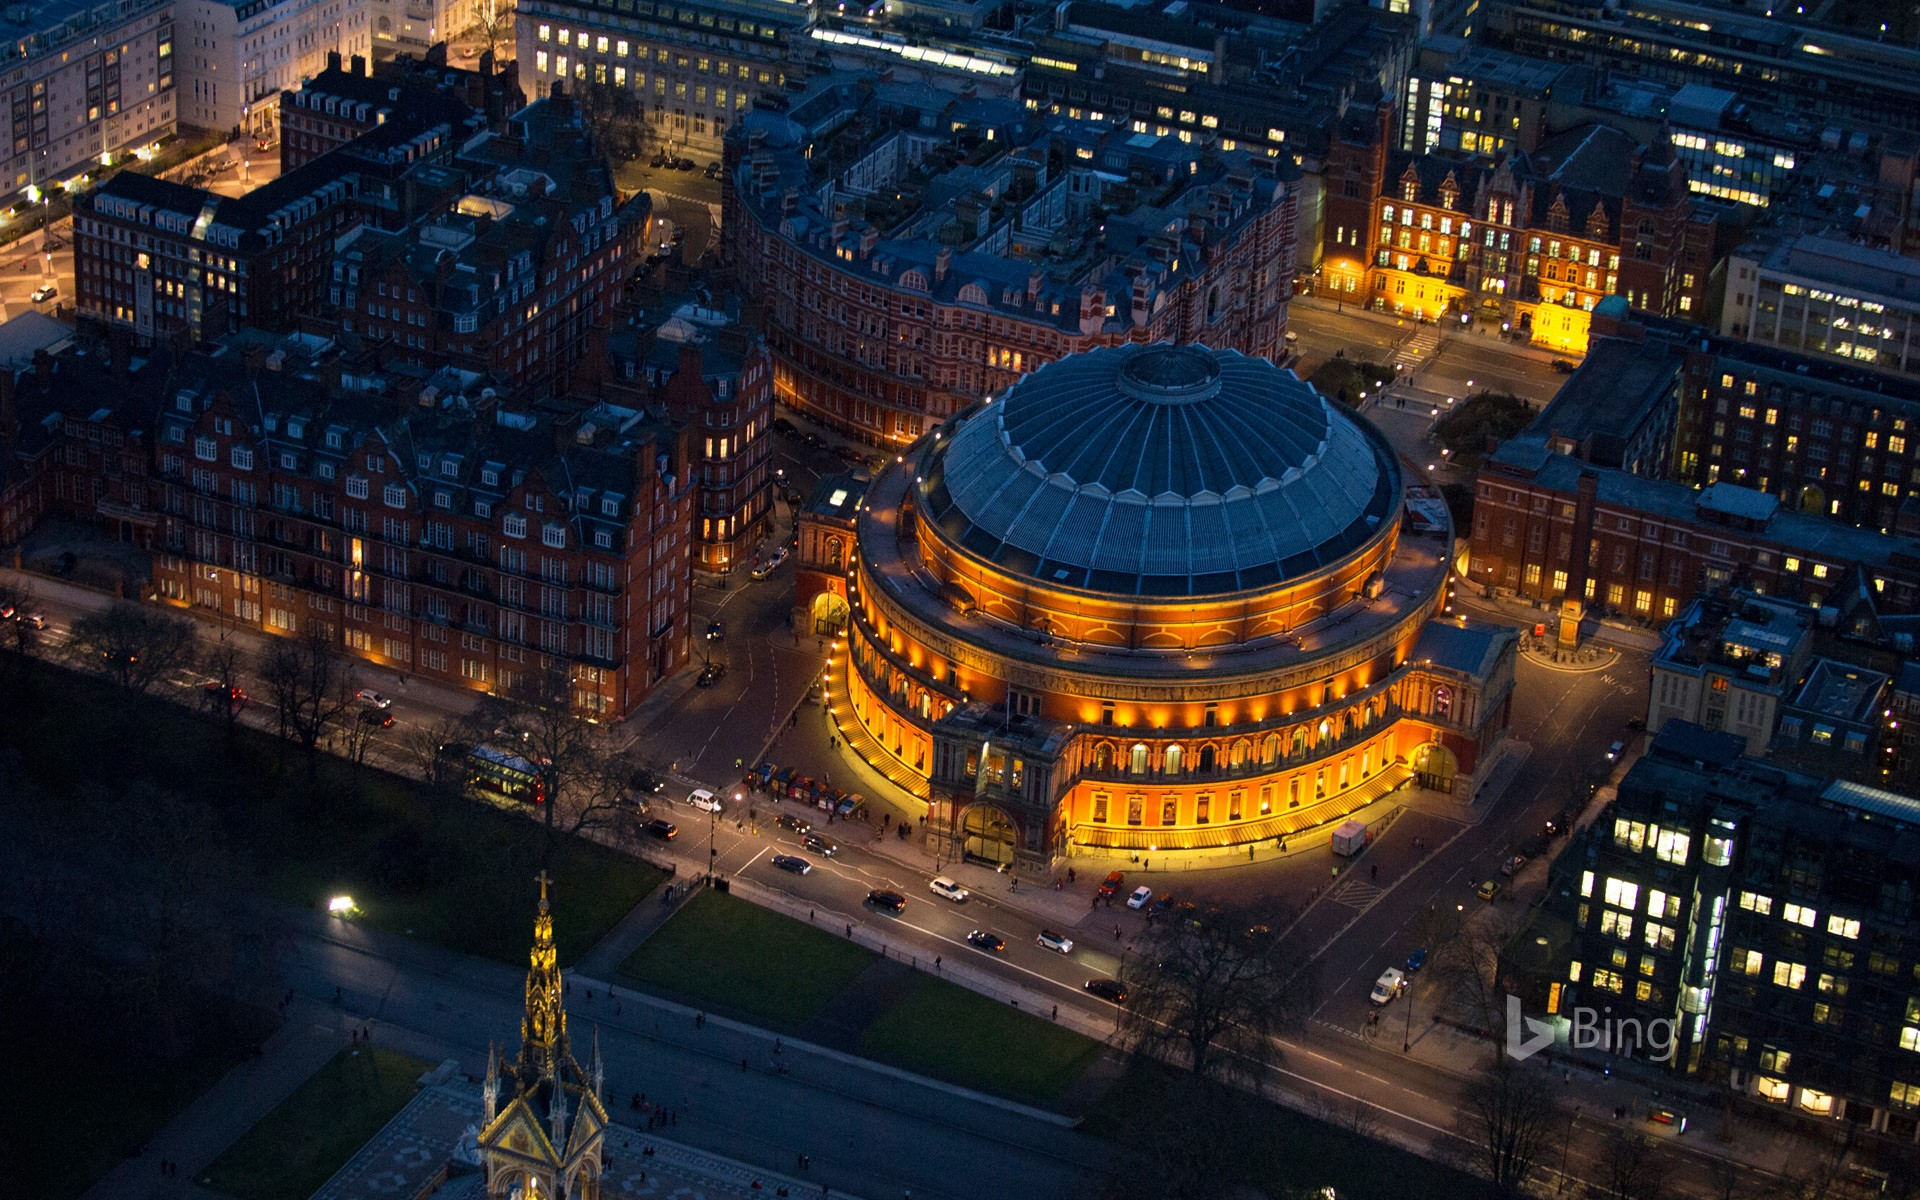 Aerial view of the Royal Albert Hall in South Kensington, London, England